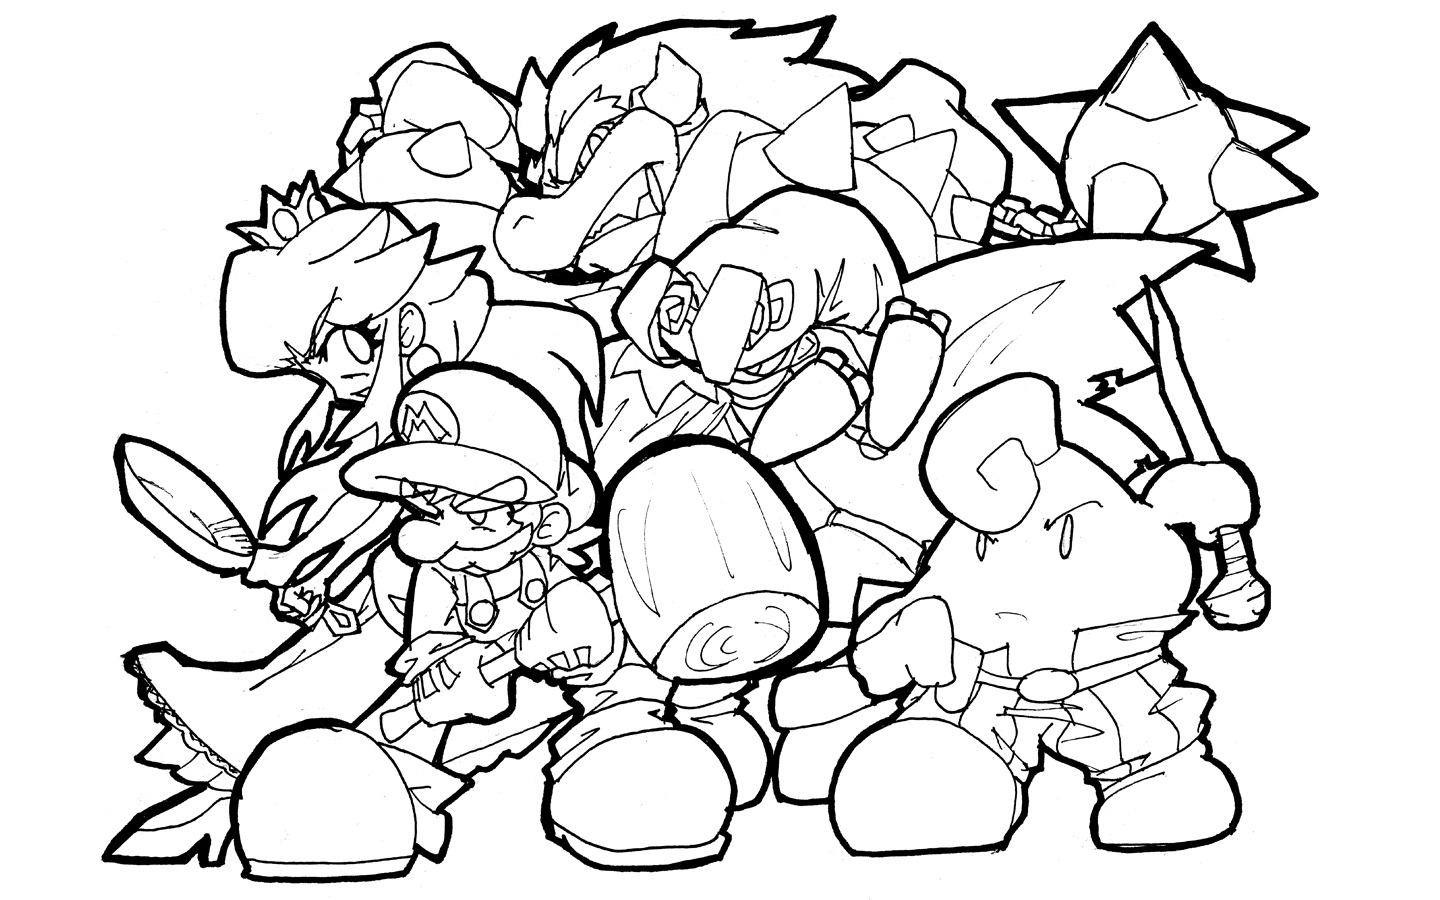 coloring sheet mario coloring pages mario coloring pages for kids bestappsforkidscom coloring mario sheet pages coloring